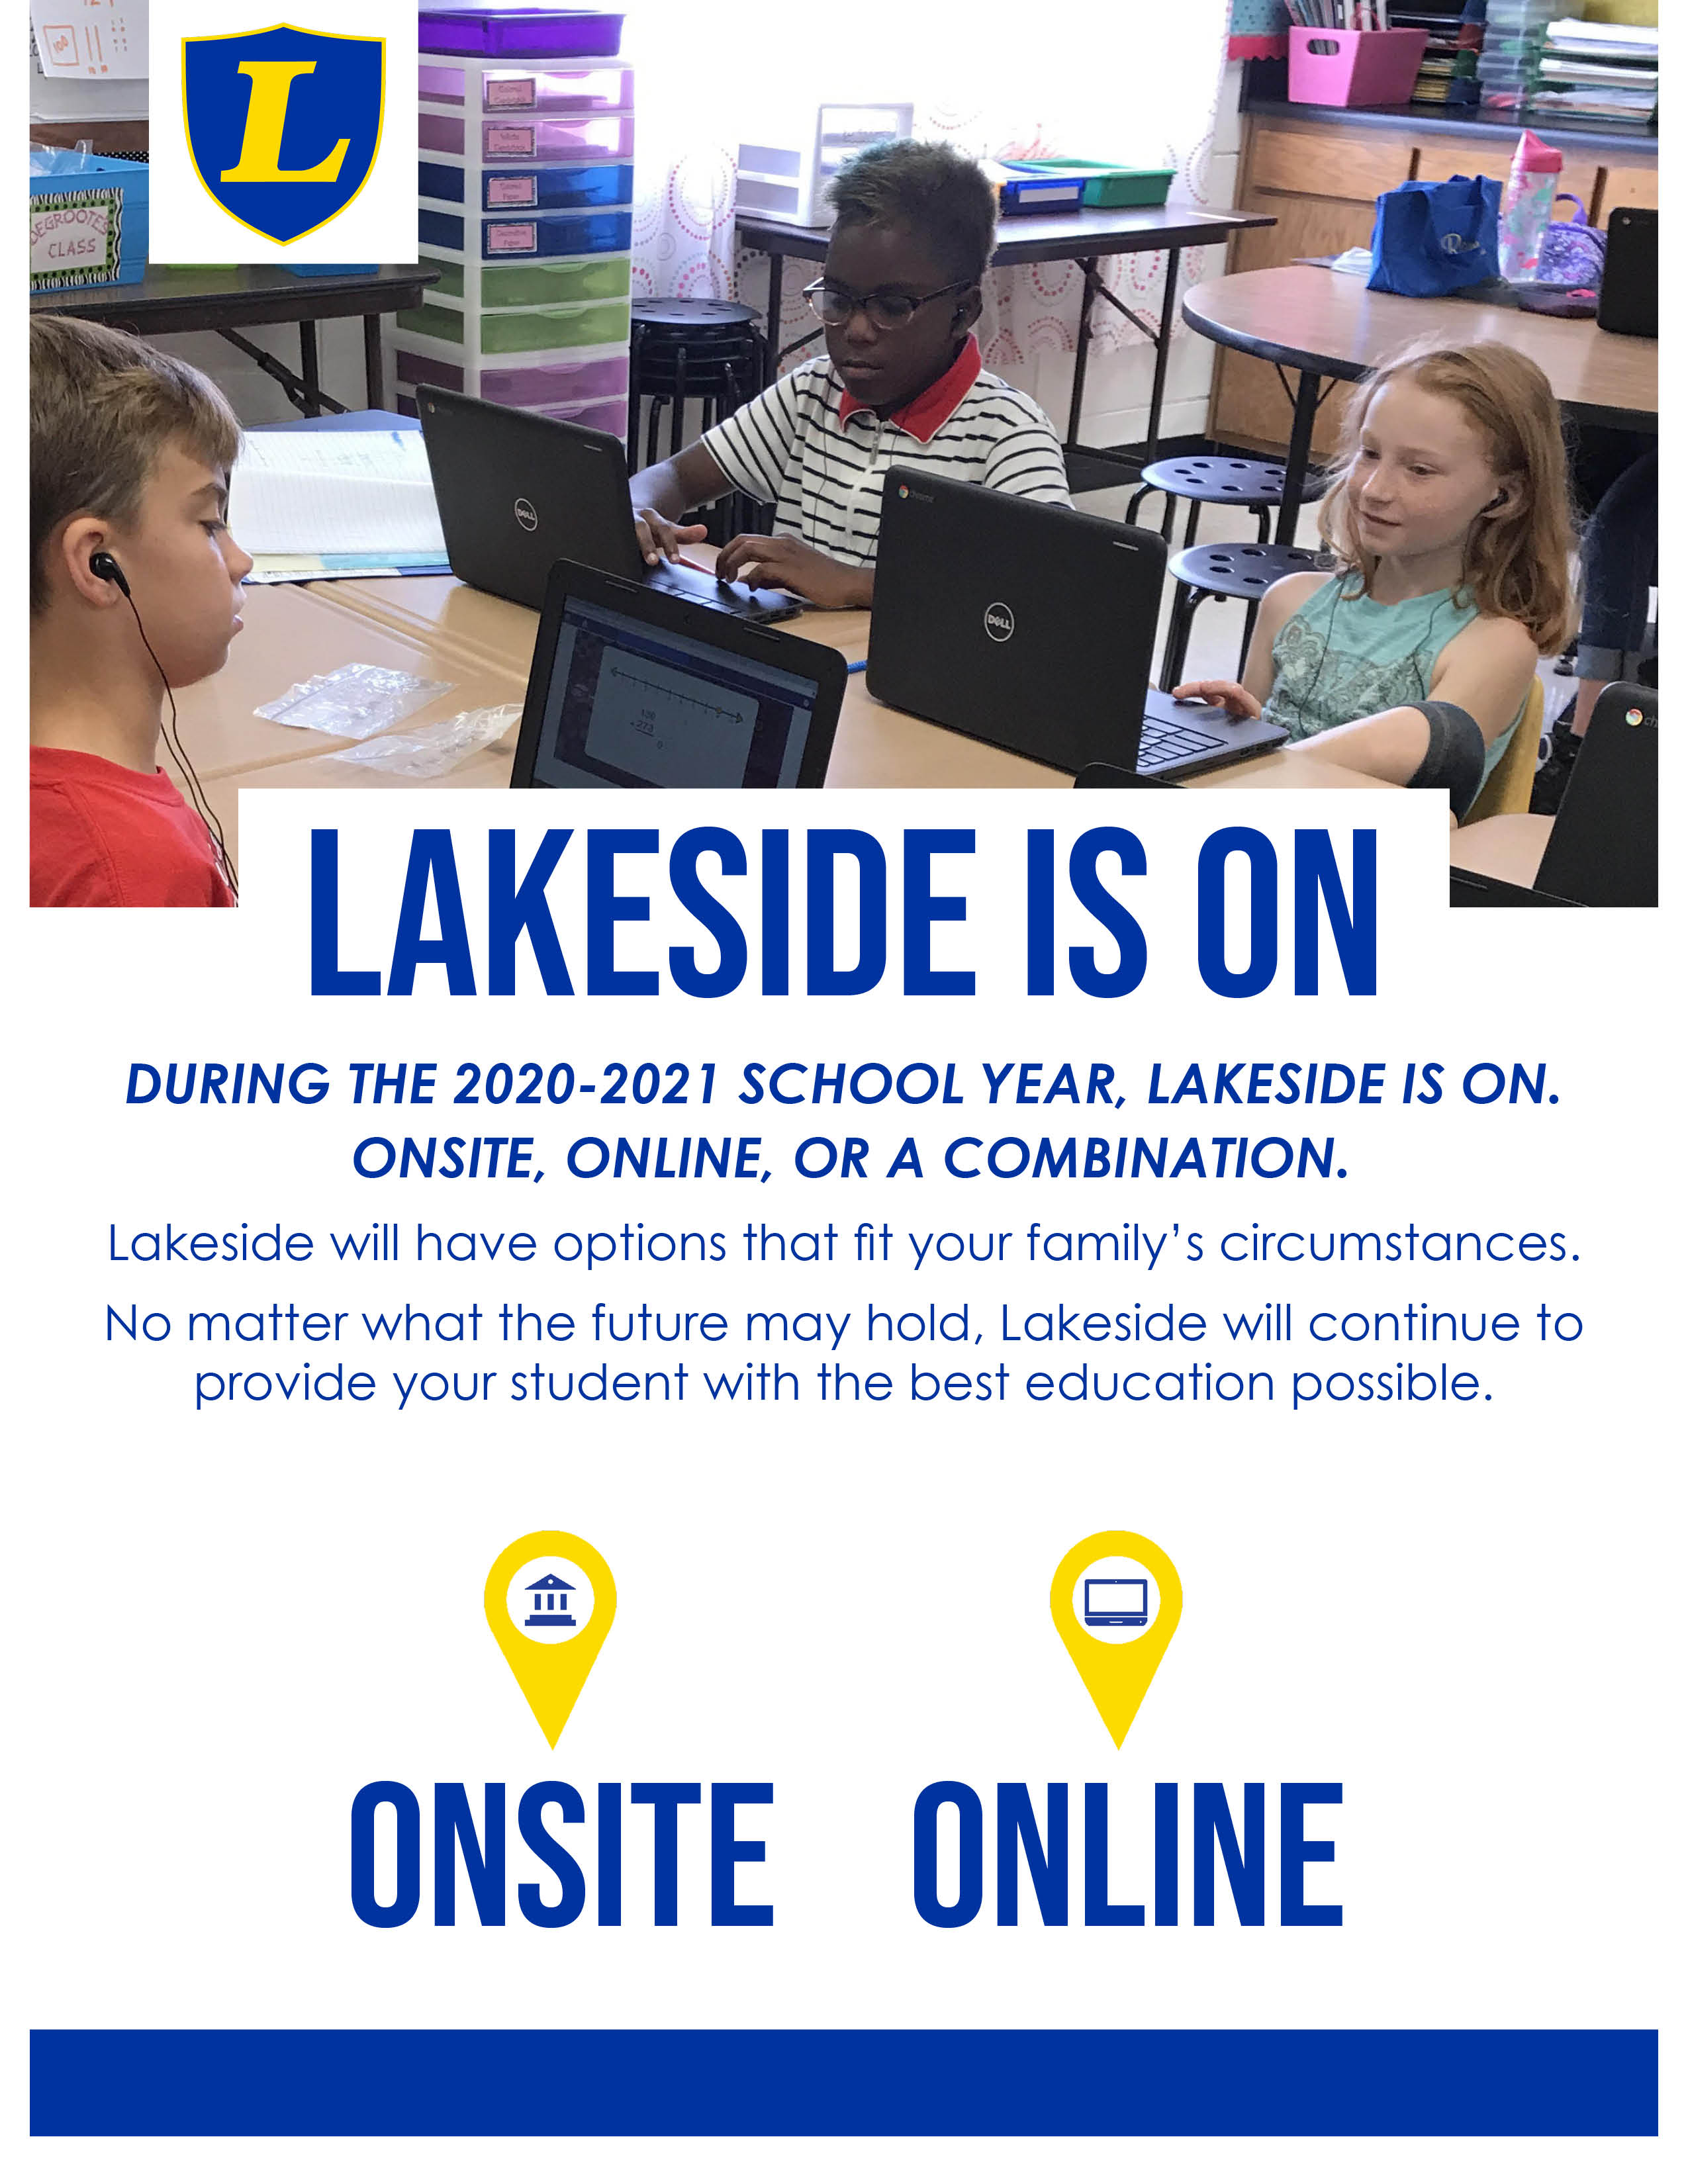 Lakeside Is On: Onsite & Online During the 2020-2021 School Year, Lakeside is On.  Onsite, online, or a combination. Lakeside will have options that fit your family's circumstances.  No matter what the future may hold, Lakeside will continue to provide your student with the best education possible.